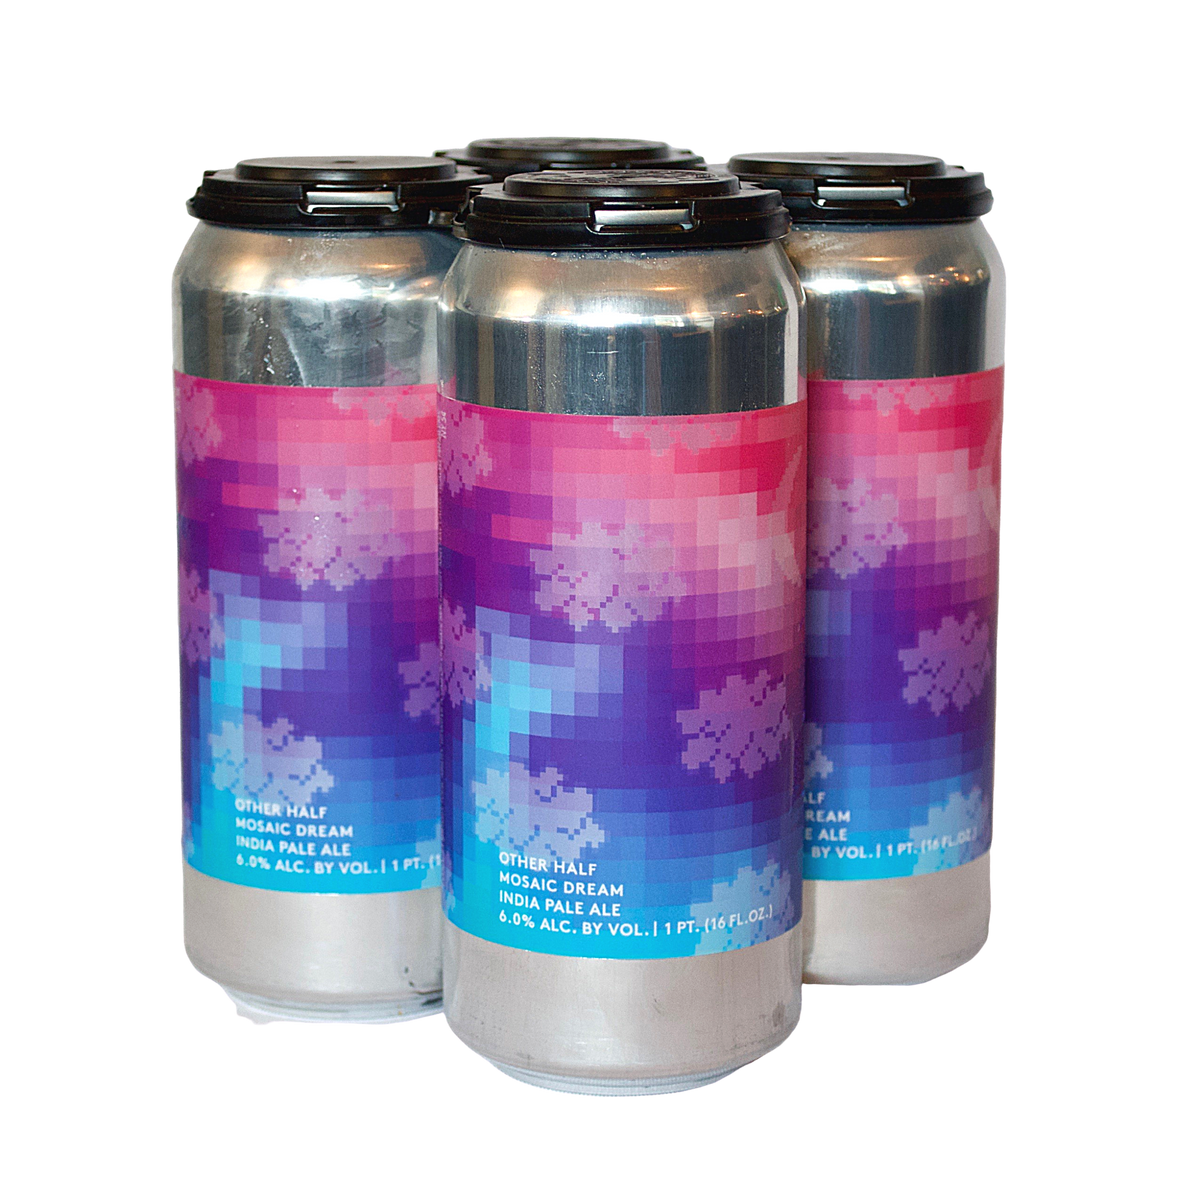 Other Half Mosaic Dream <br> IPA <br> (Limit 2 Per Order)